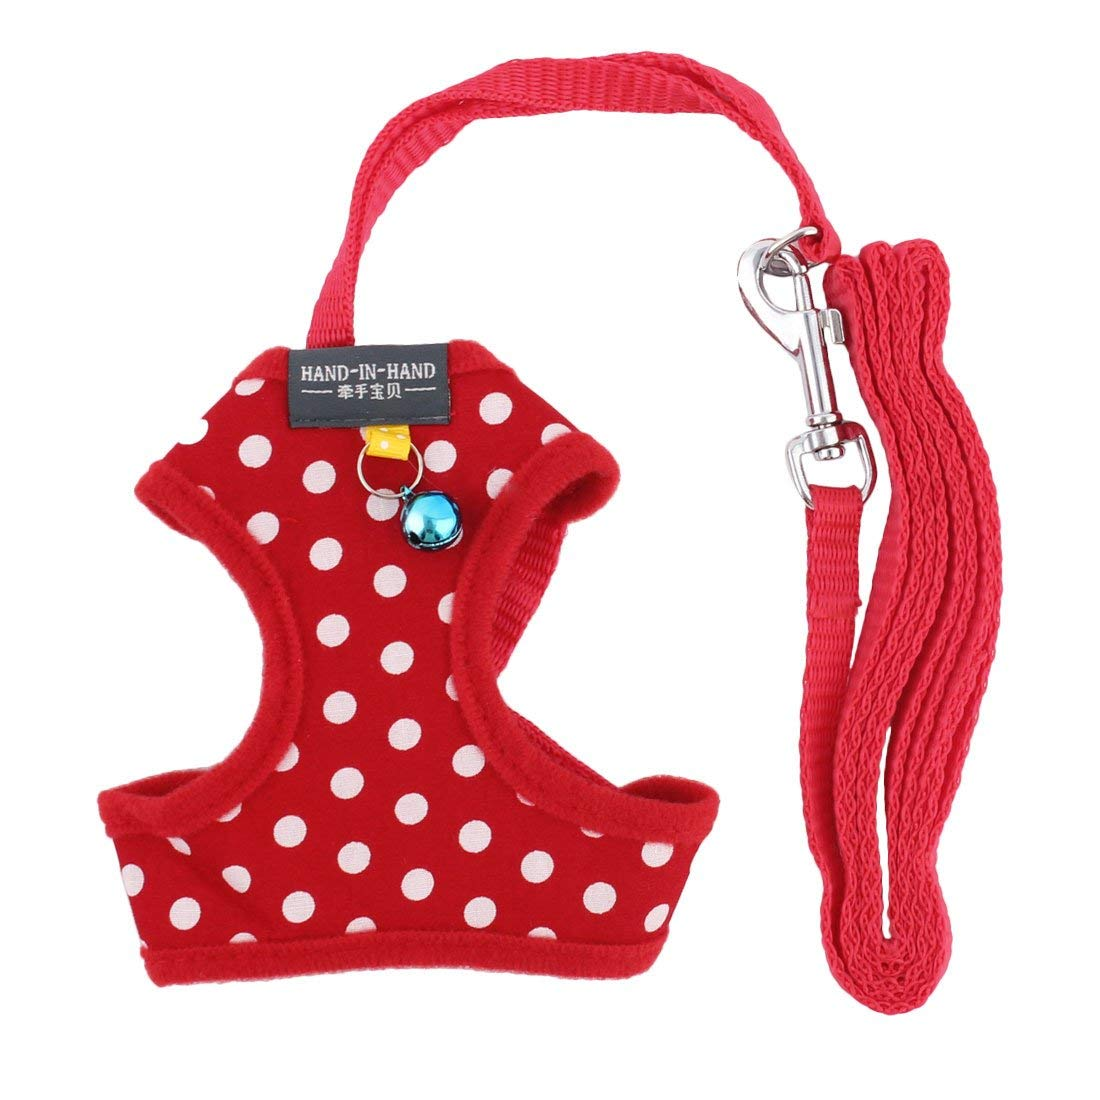 1Pc Nylon Pet Dog Adjustable Walk Training Harness Leash Rope Anchor Stripes 124cm Length